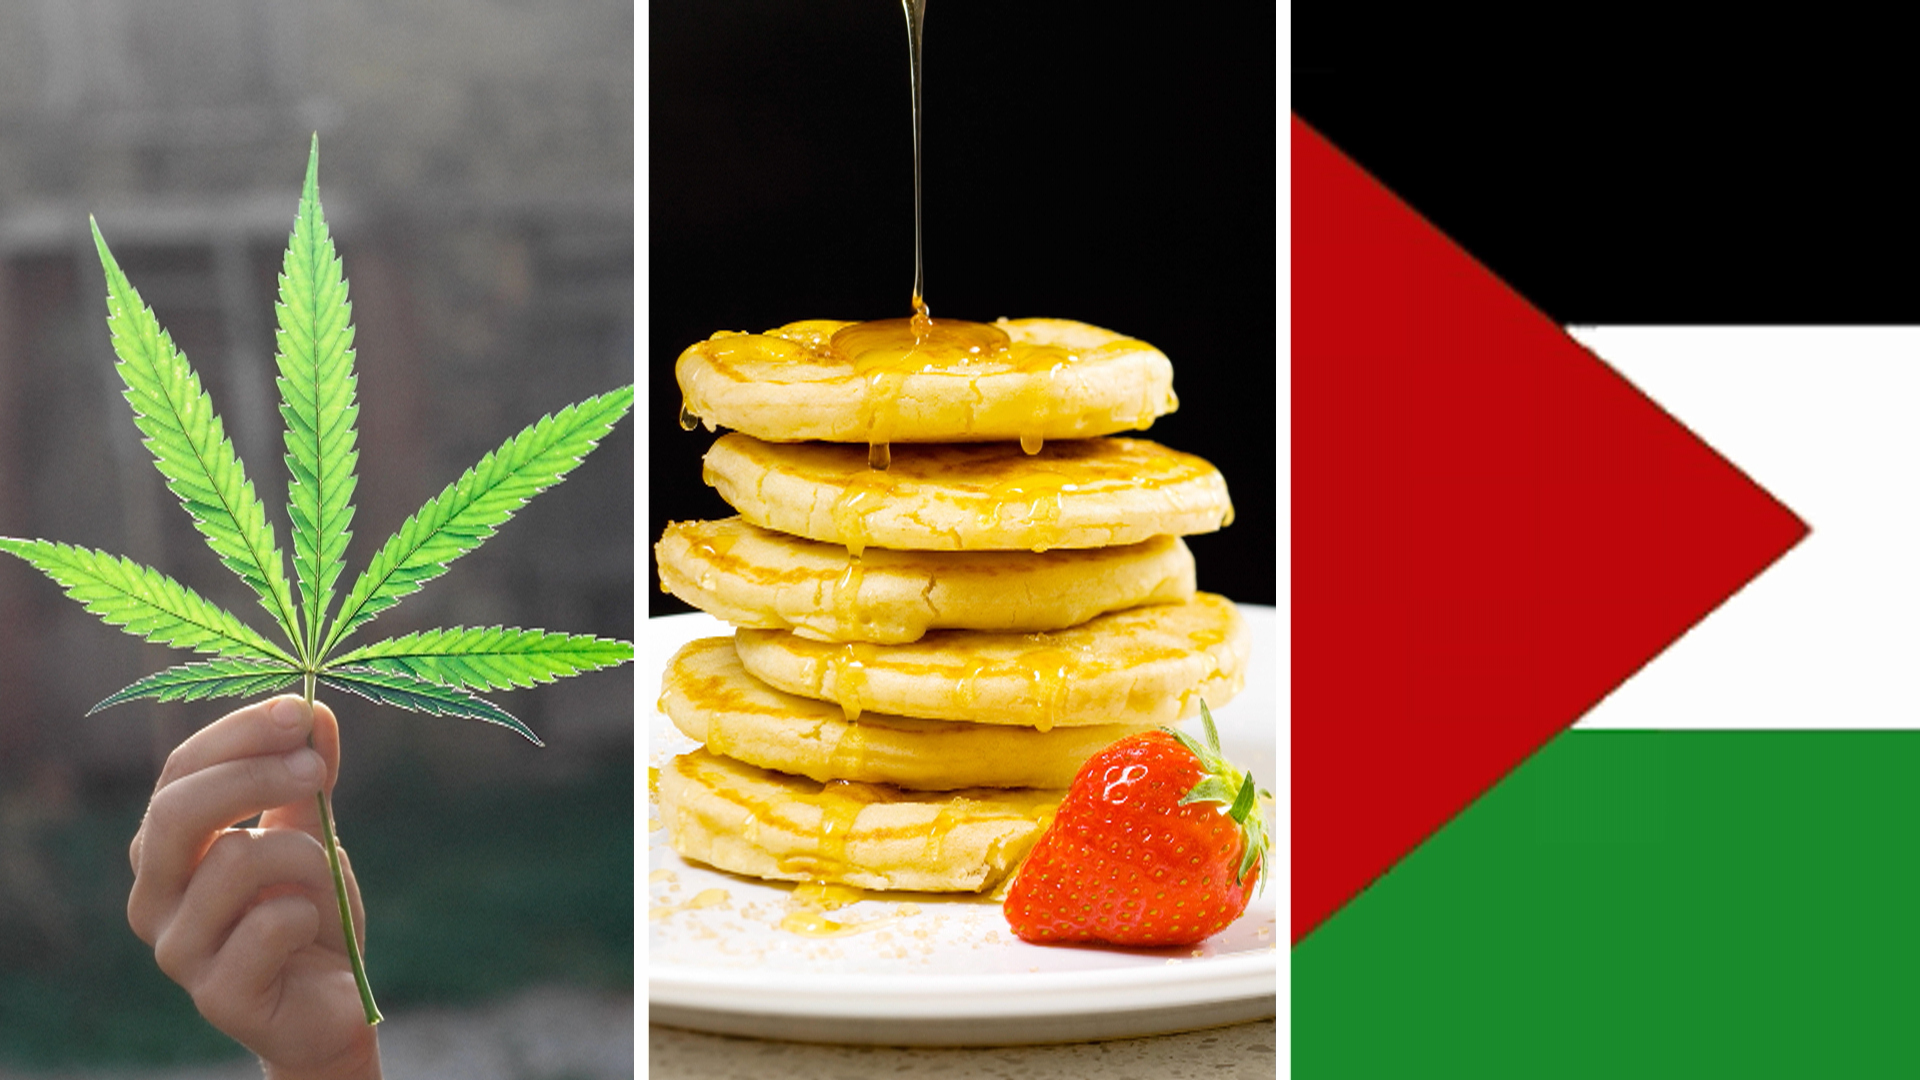 Pot, pancakes and Palestine